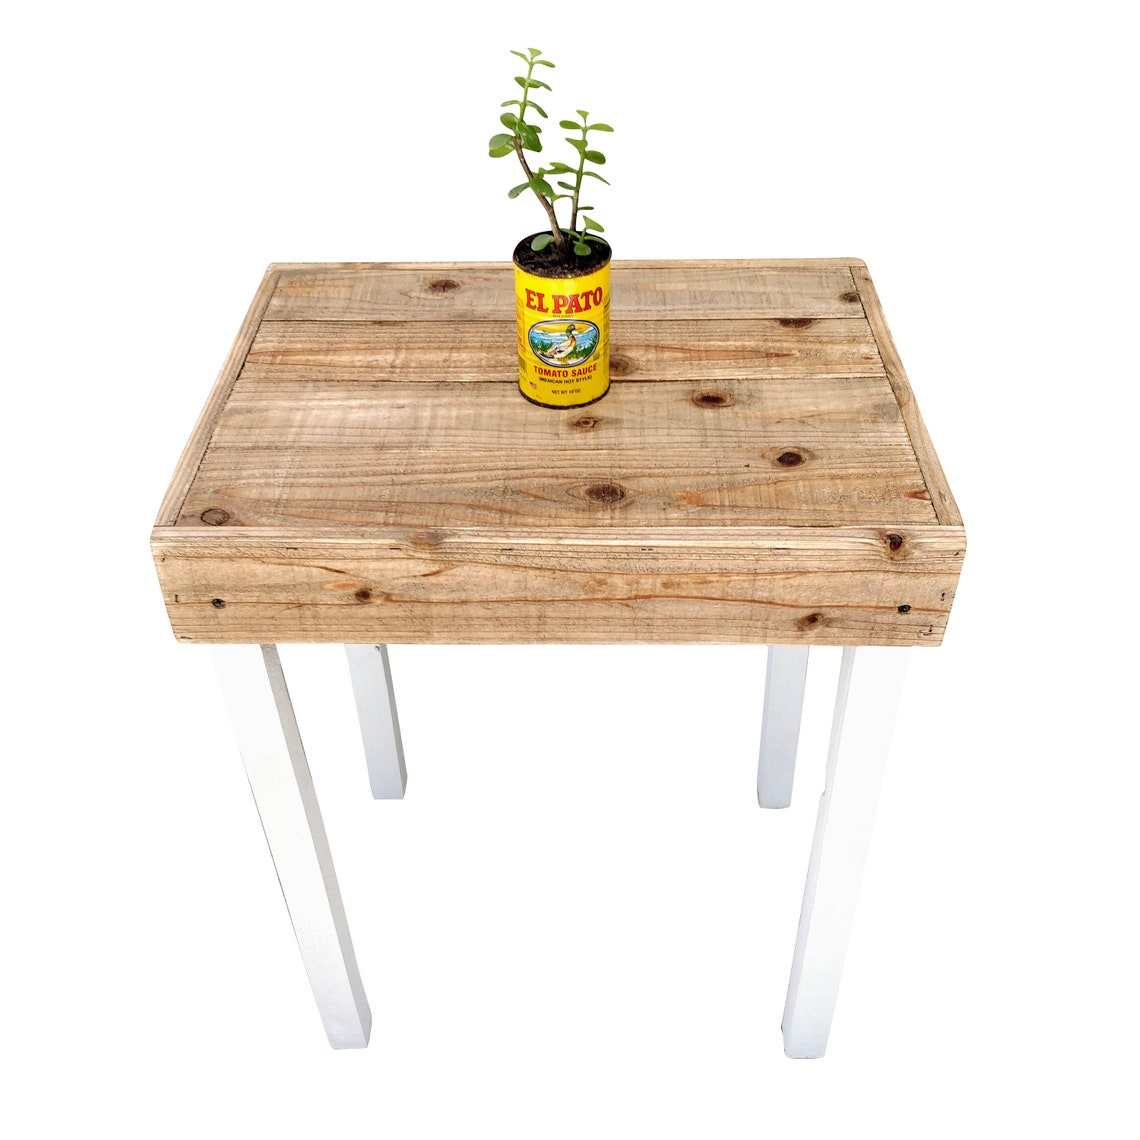 Farmhouse Side Table - accent, bedroom, end table, entryway, furniture, night stand, nightstand, pallet, shabby chic, white, wood,